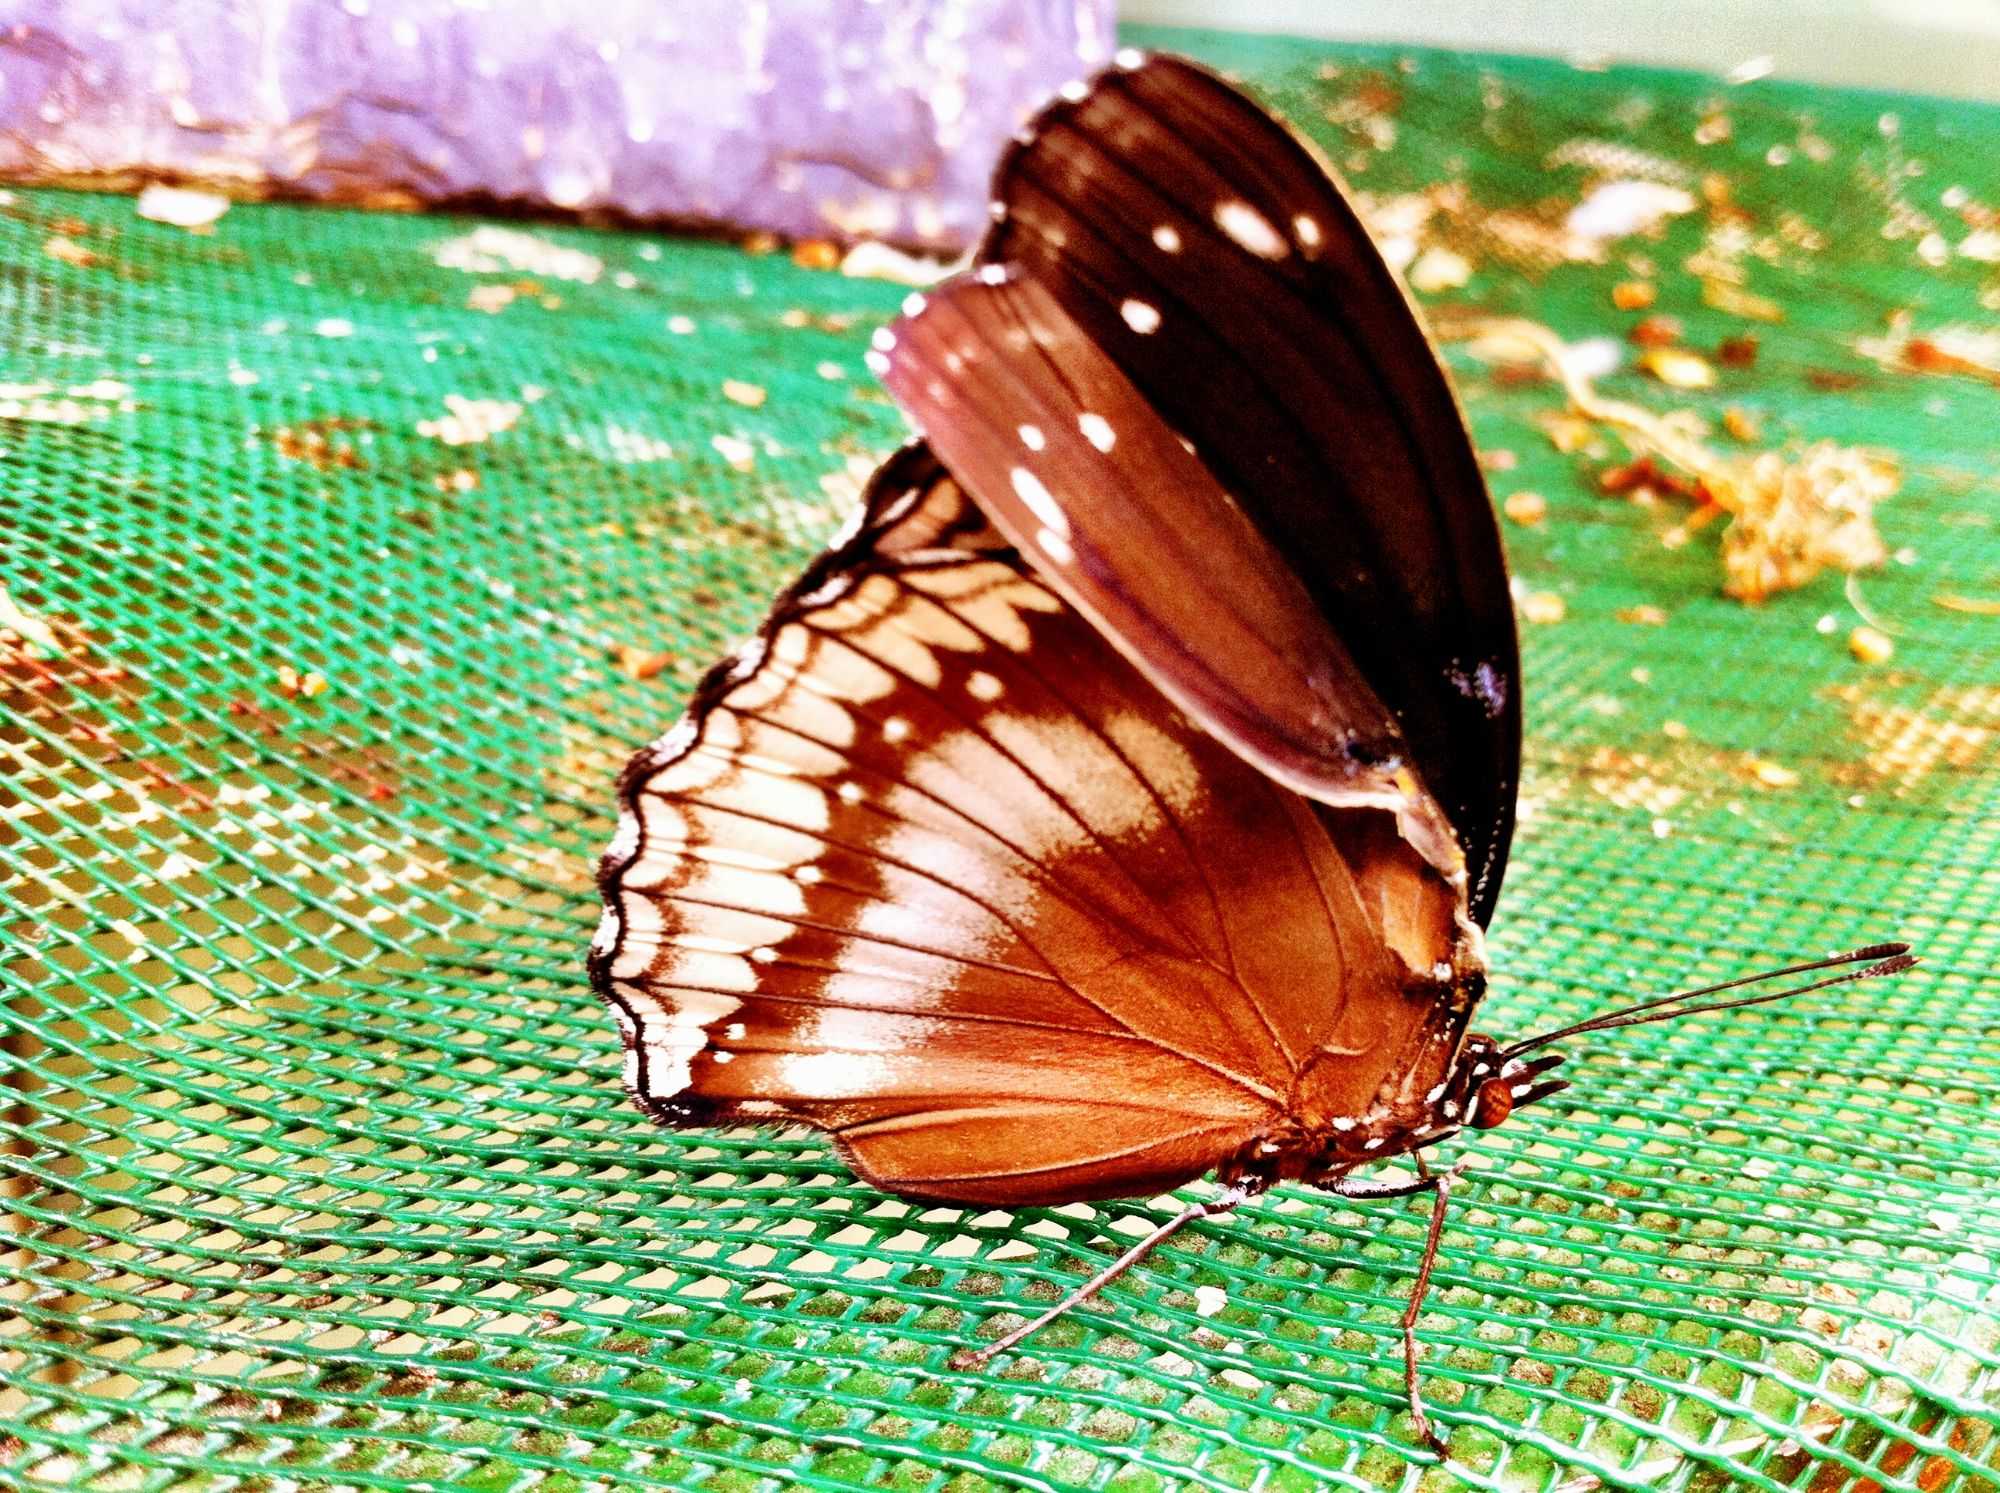 Free stock photo butterfly